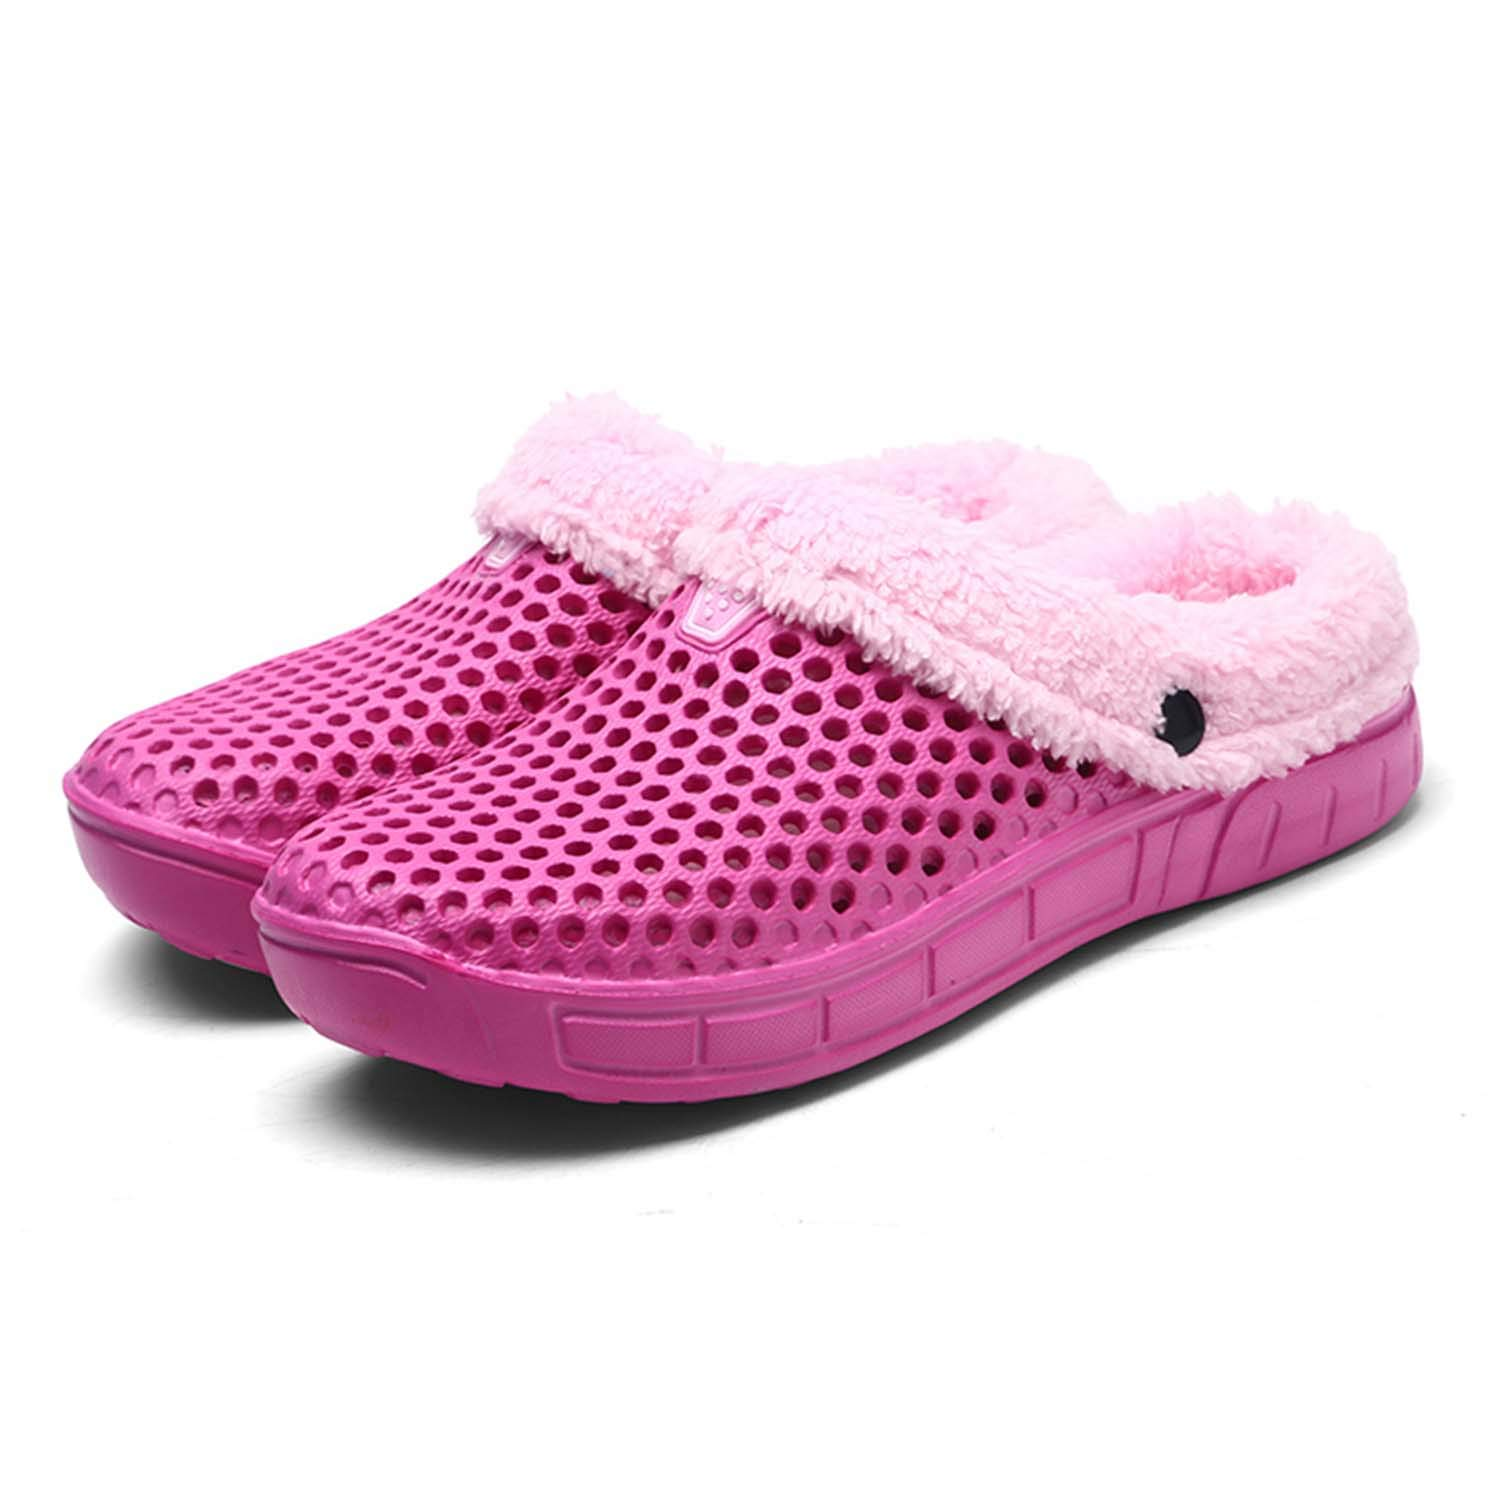 HMAIBO Women's Fur Lined Clogs House Slippers Winter Breathable Indoor Outdoor Walking Garden Shoes Warm Non-Slip Mule Footwear Rose red 38